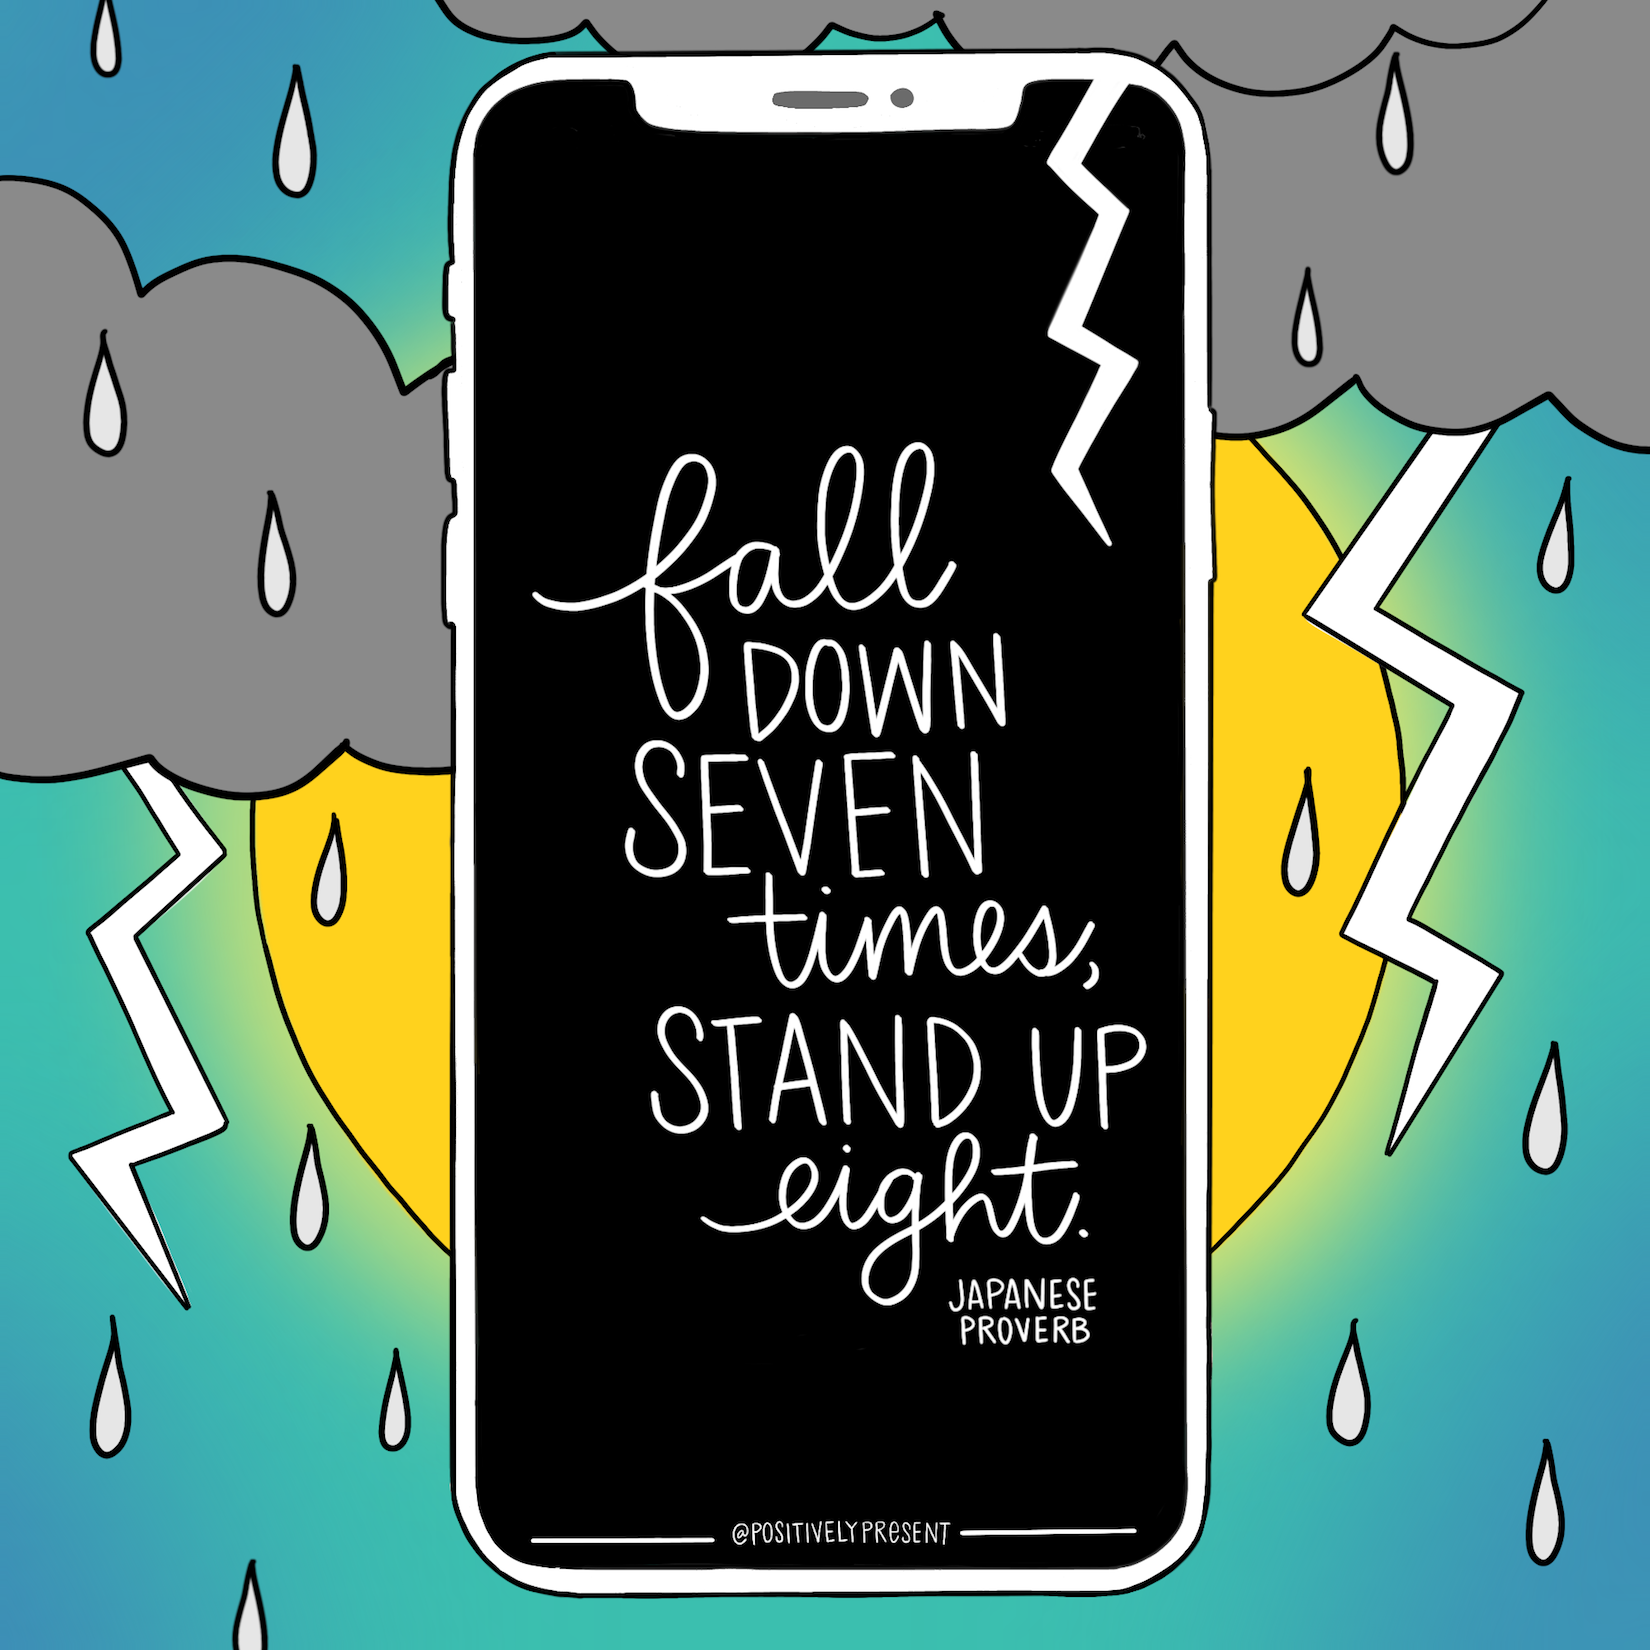 fall down seven stand up eight